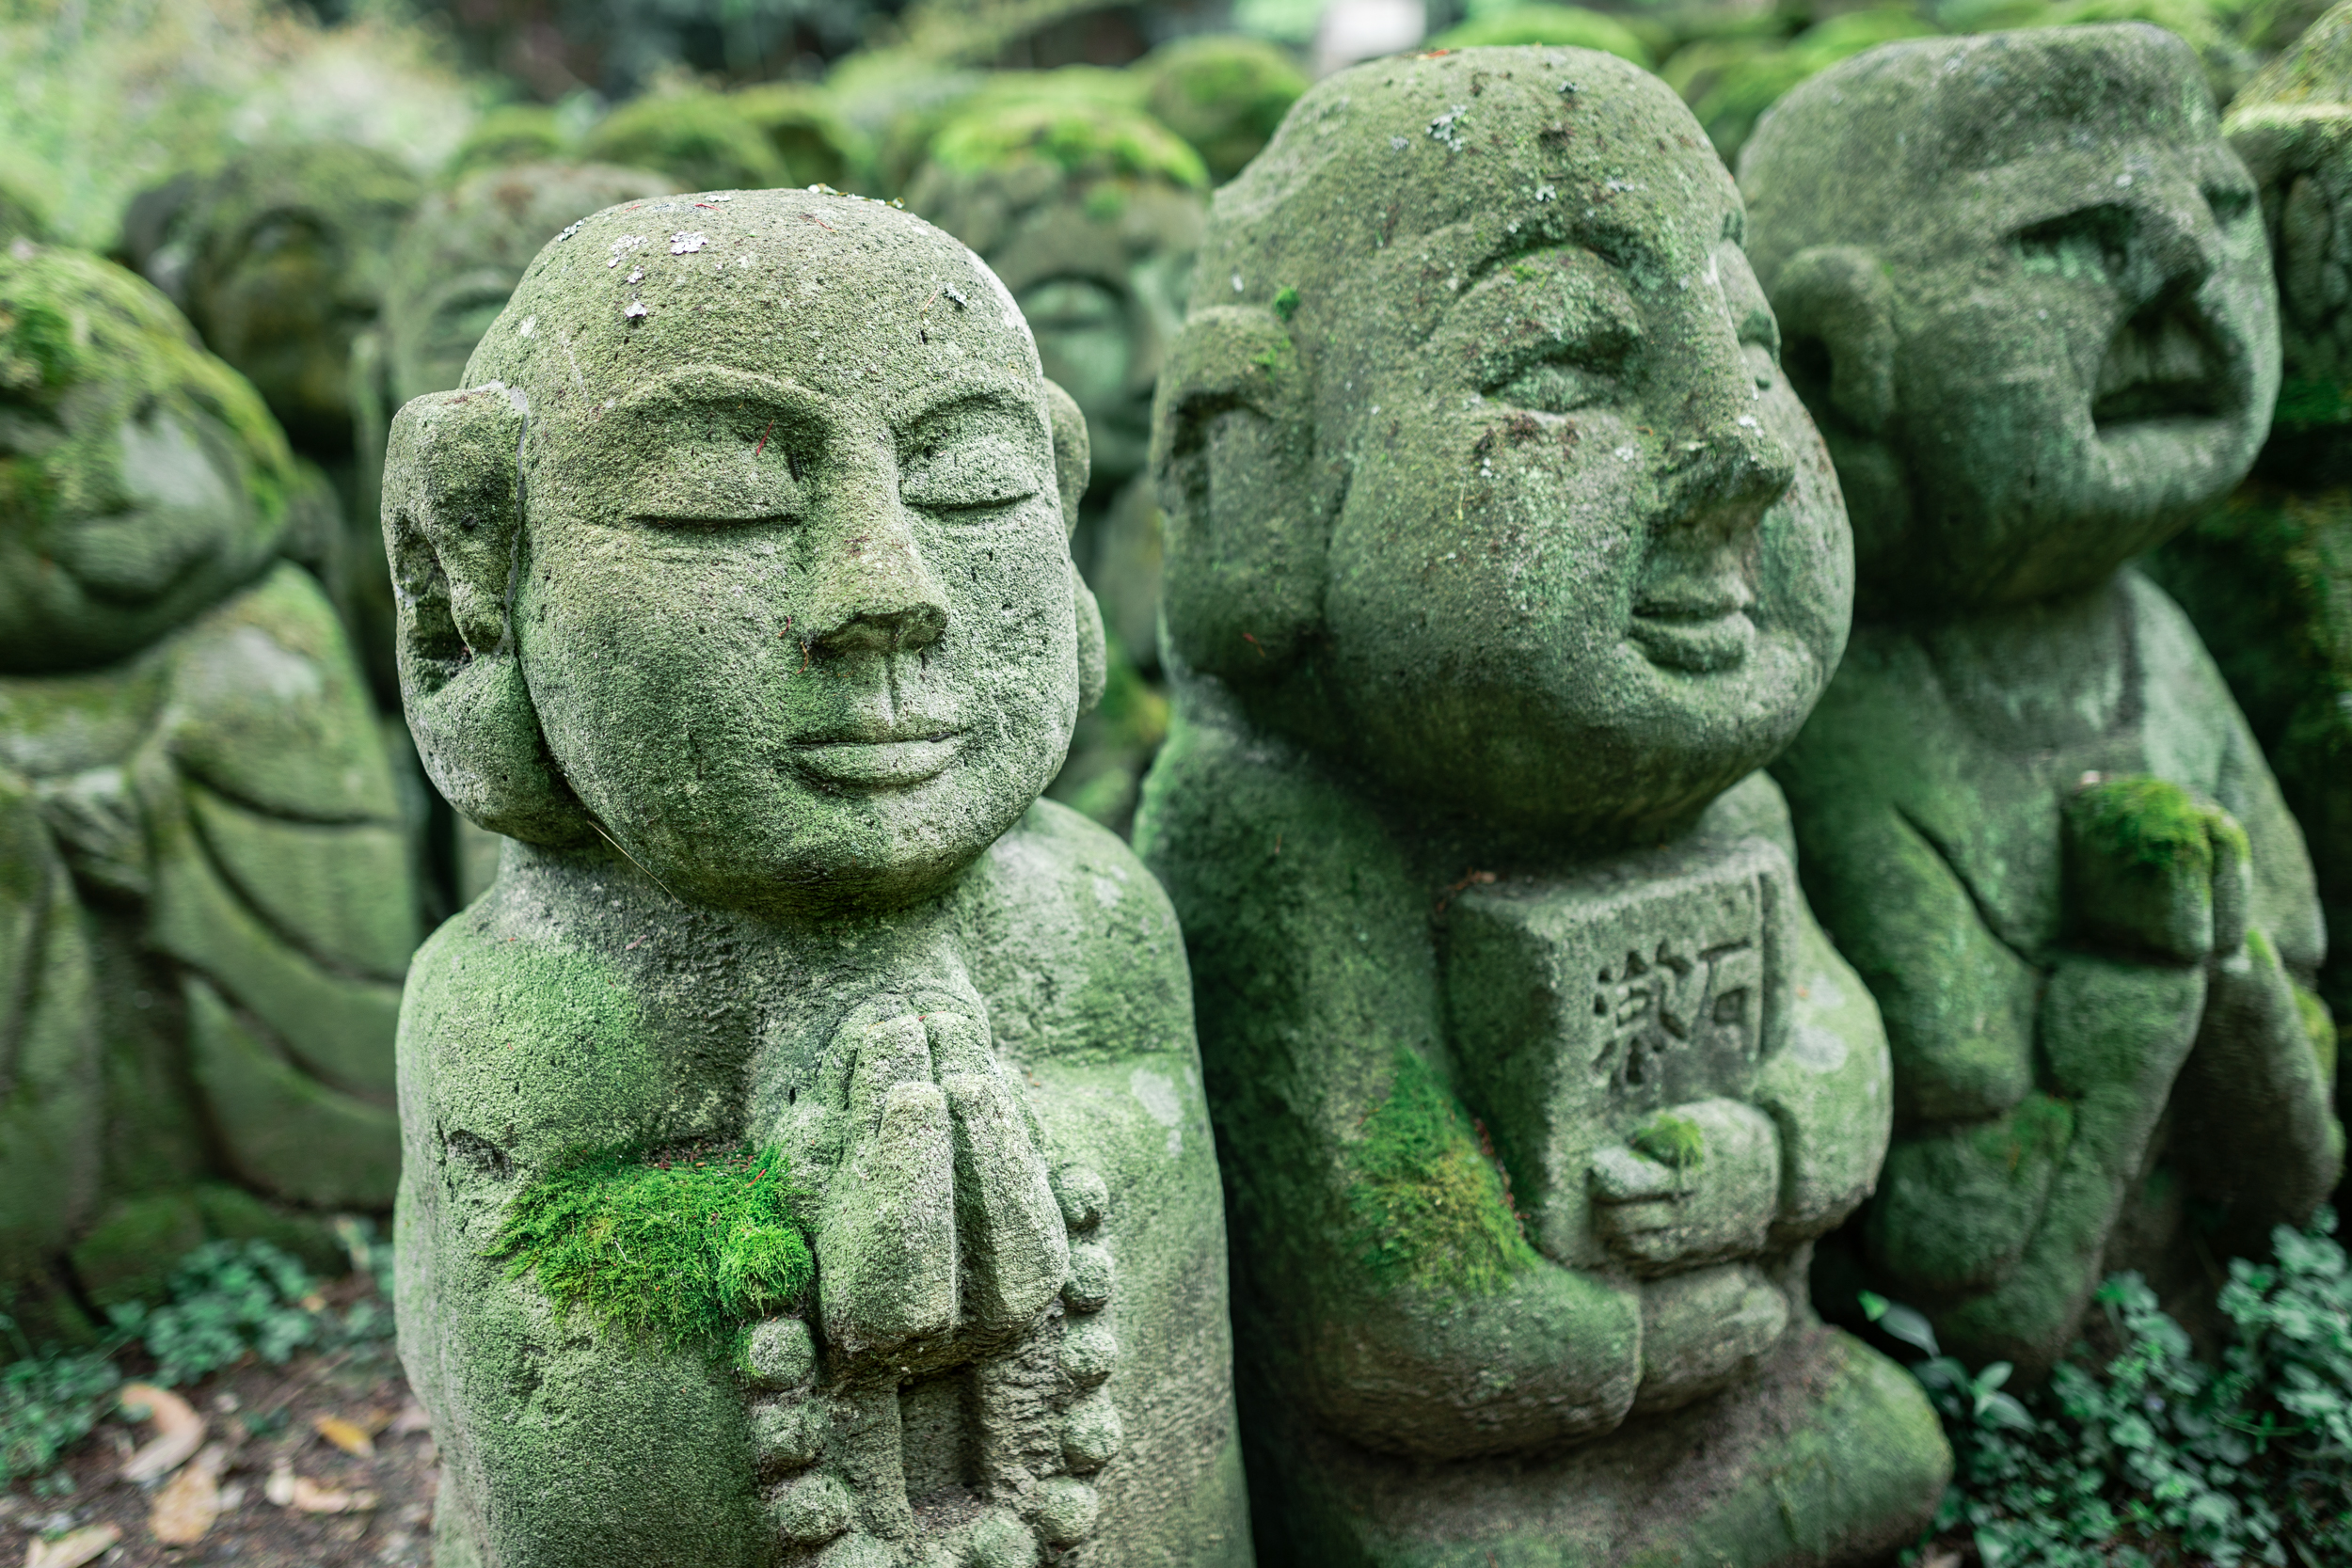 Over 1,200  rakan  statues inhabit the temple grounds.